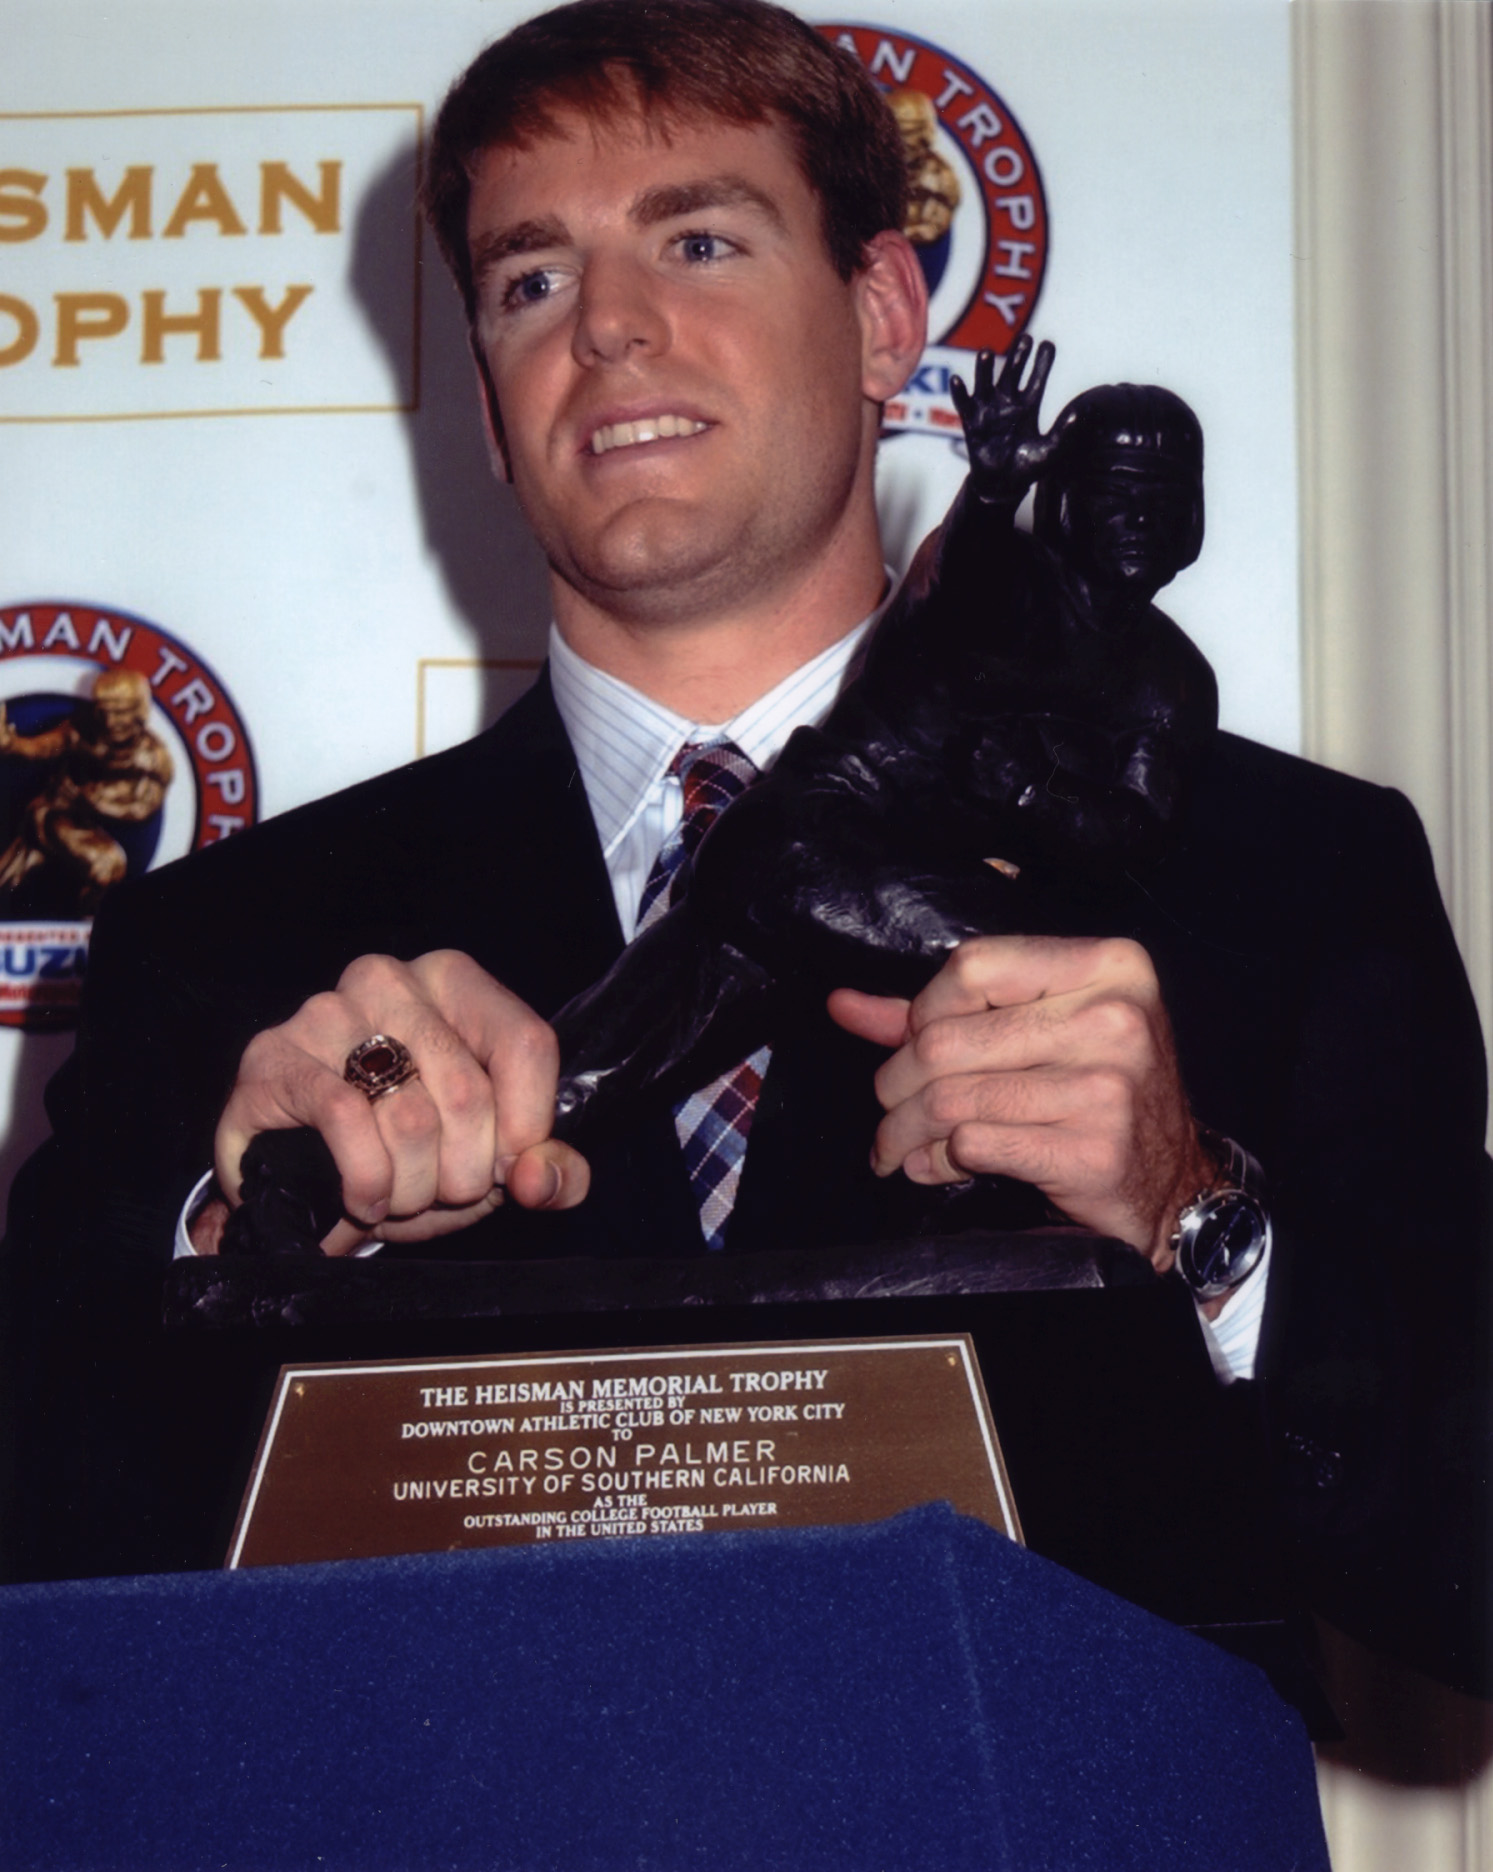 Carson Palmer with Heisman Trophy Award